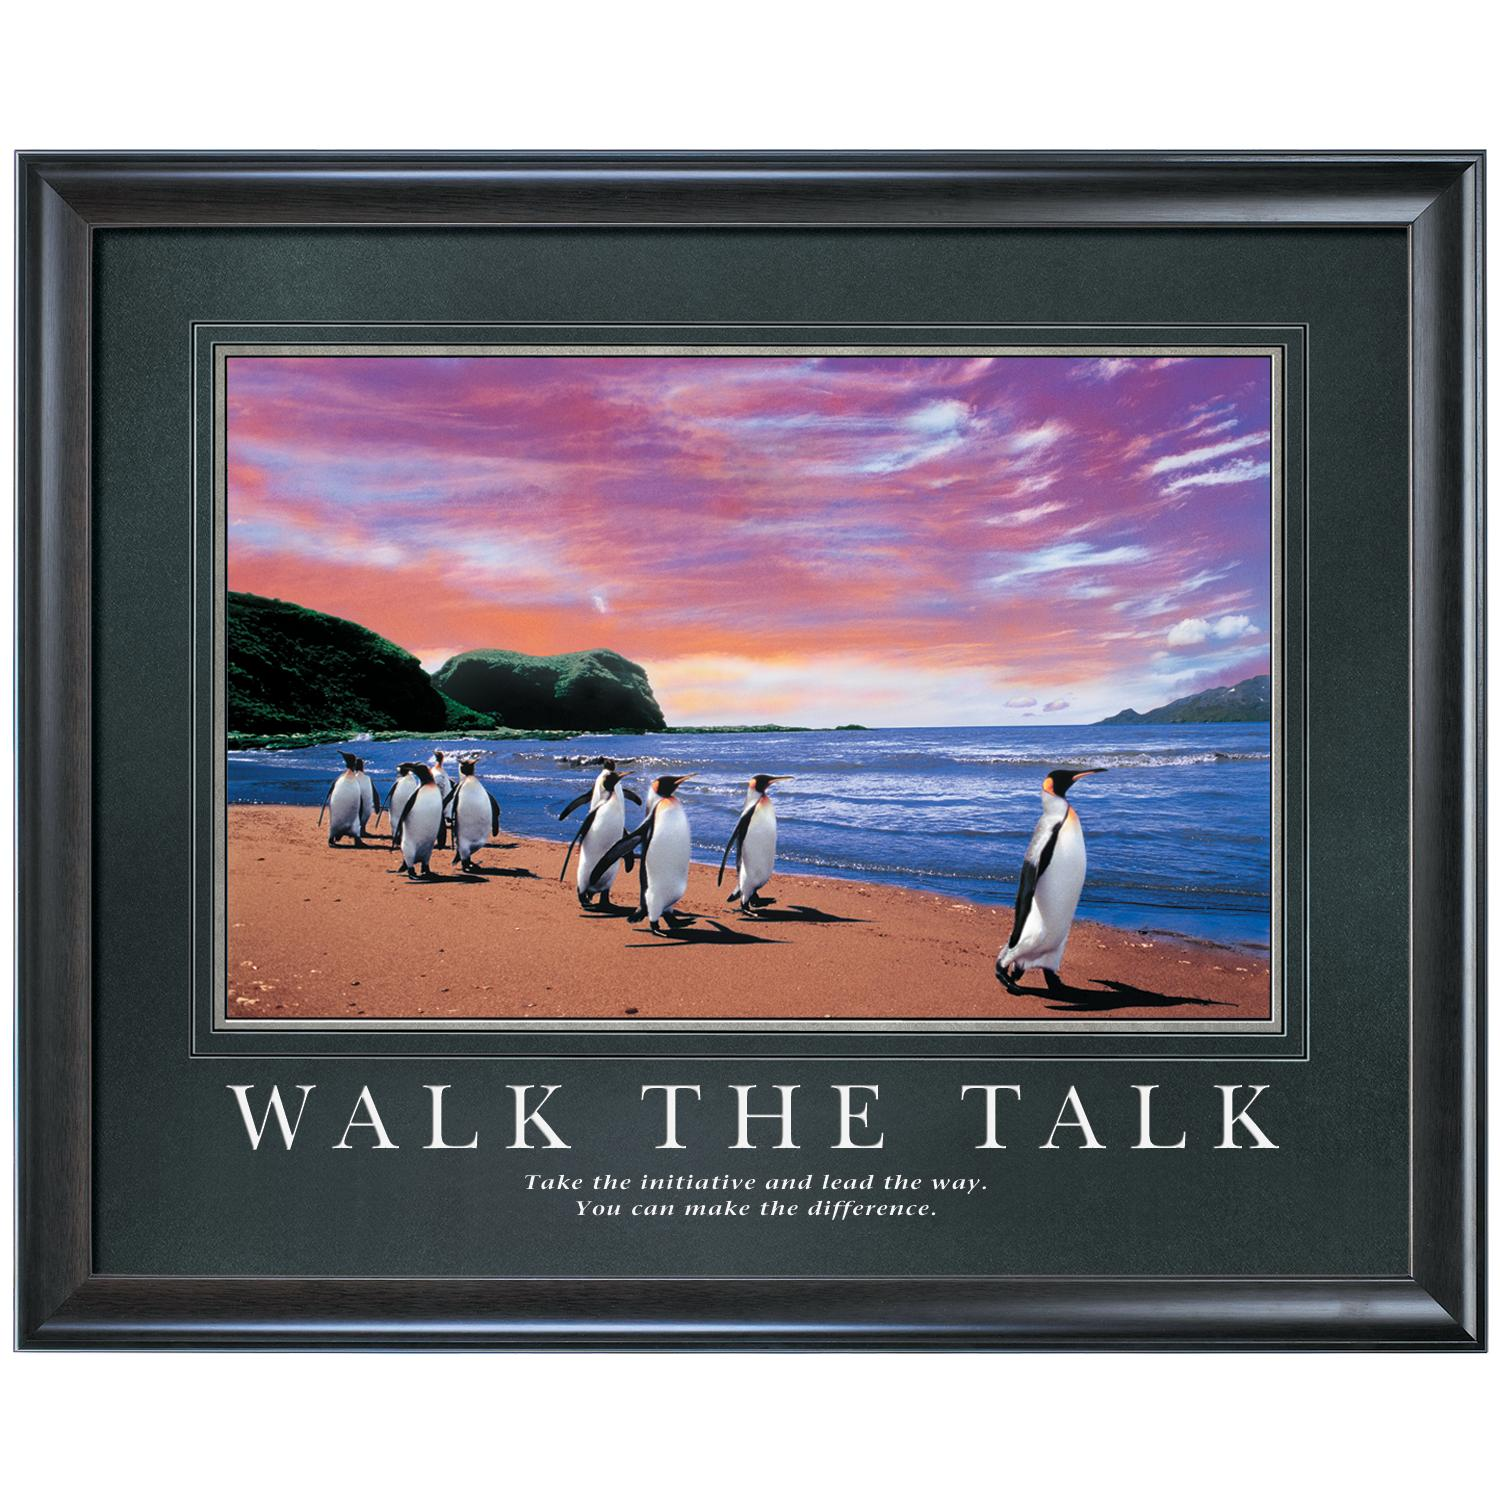 Walk the Talk Motivational Poster